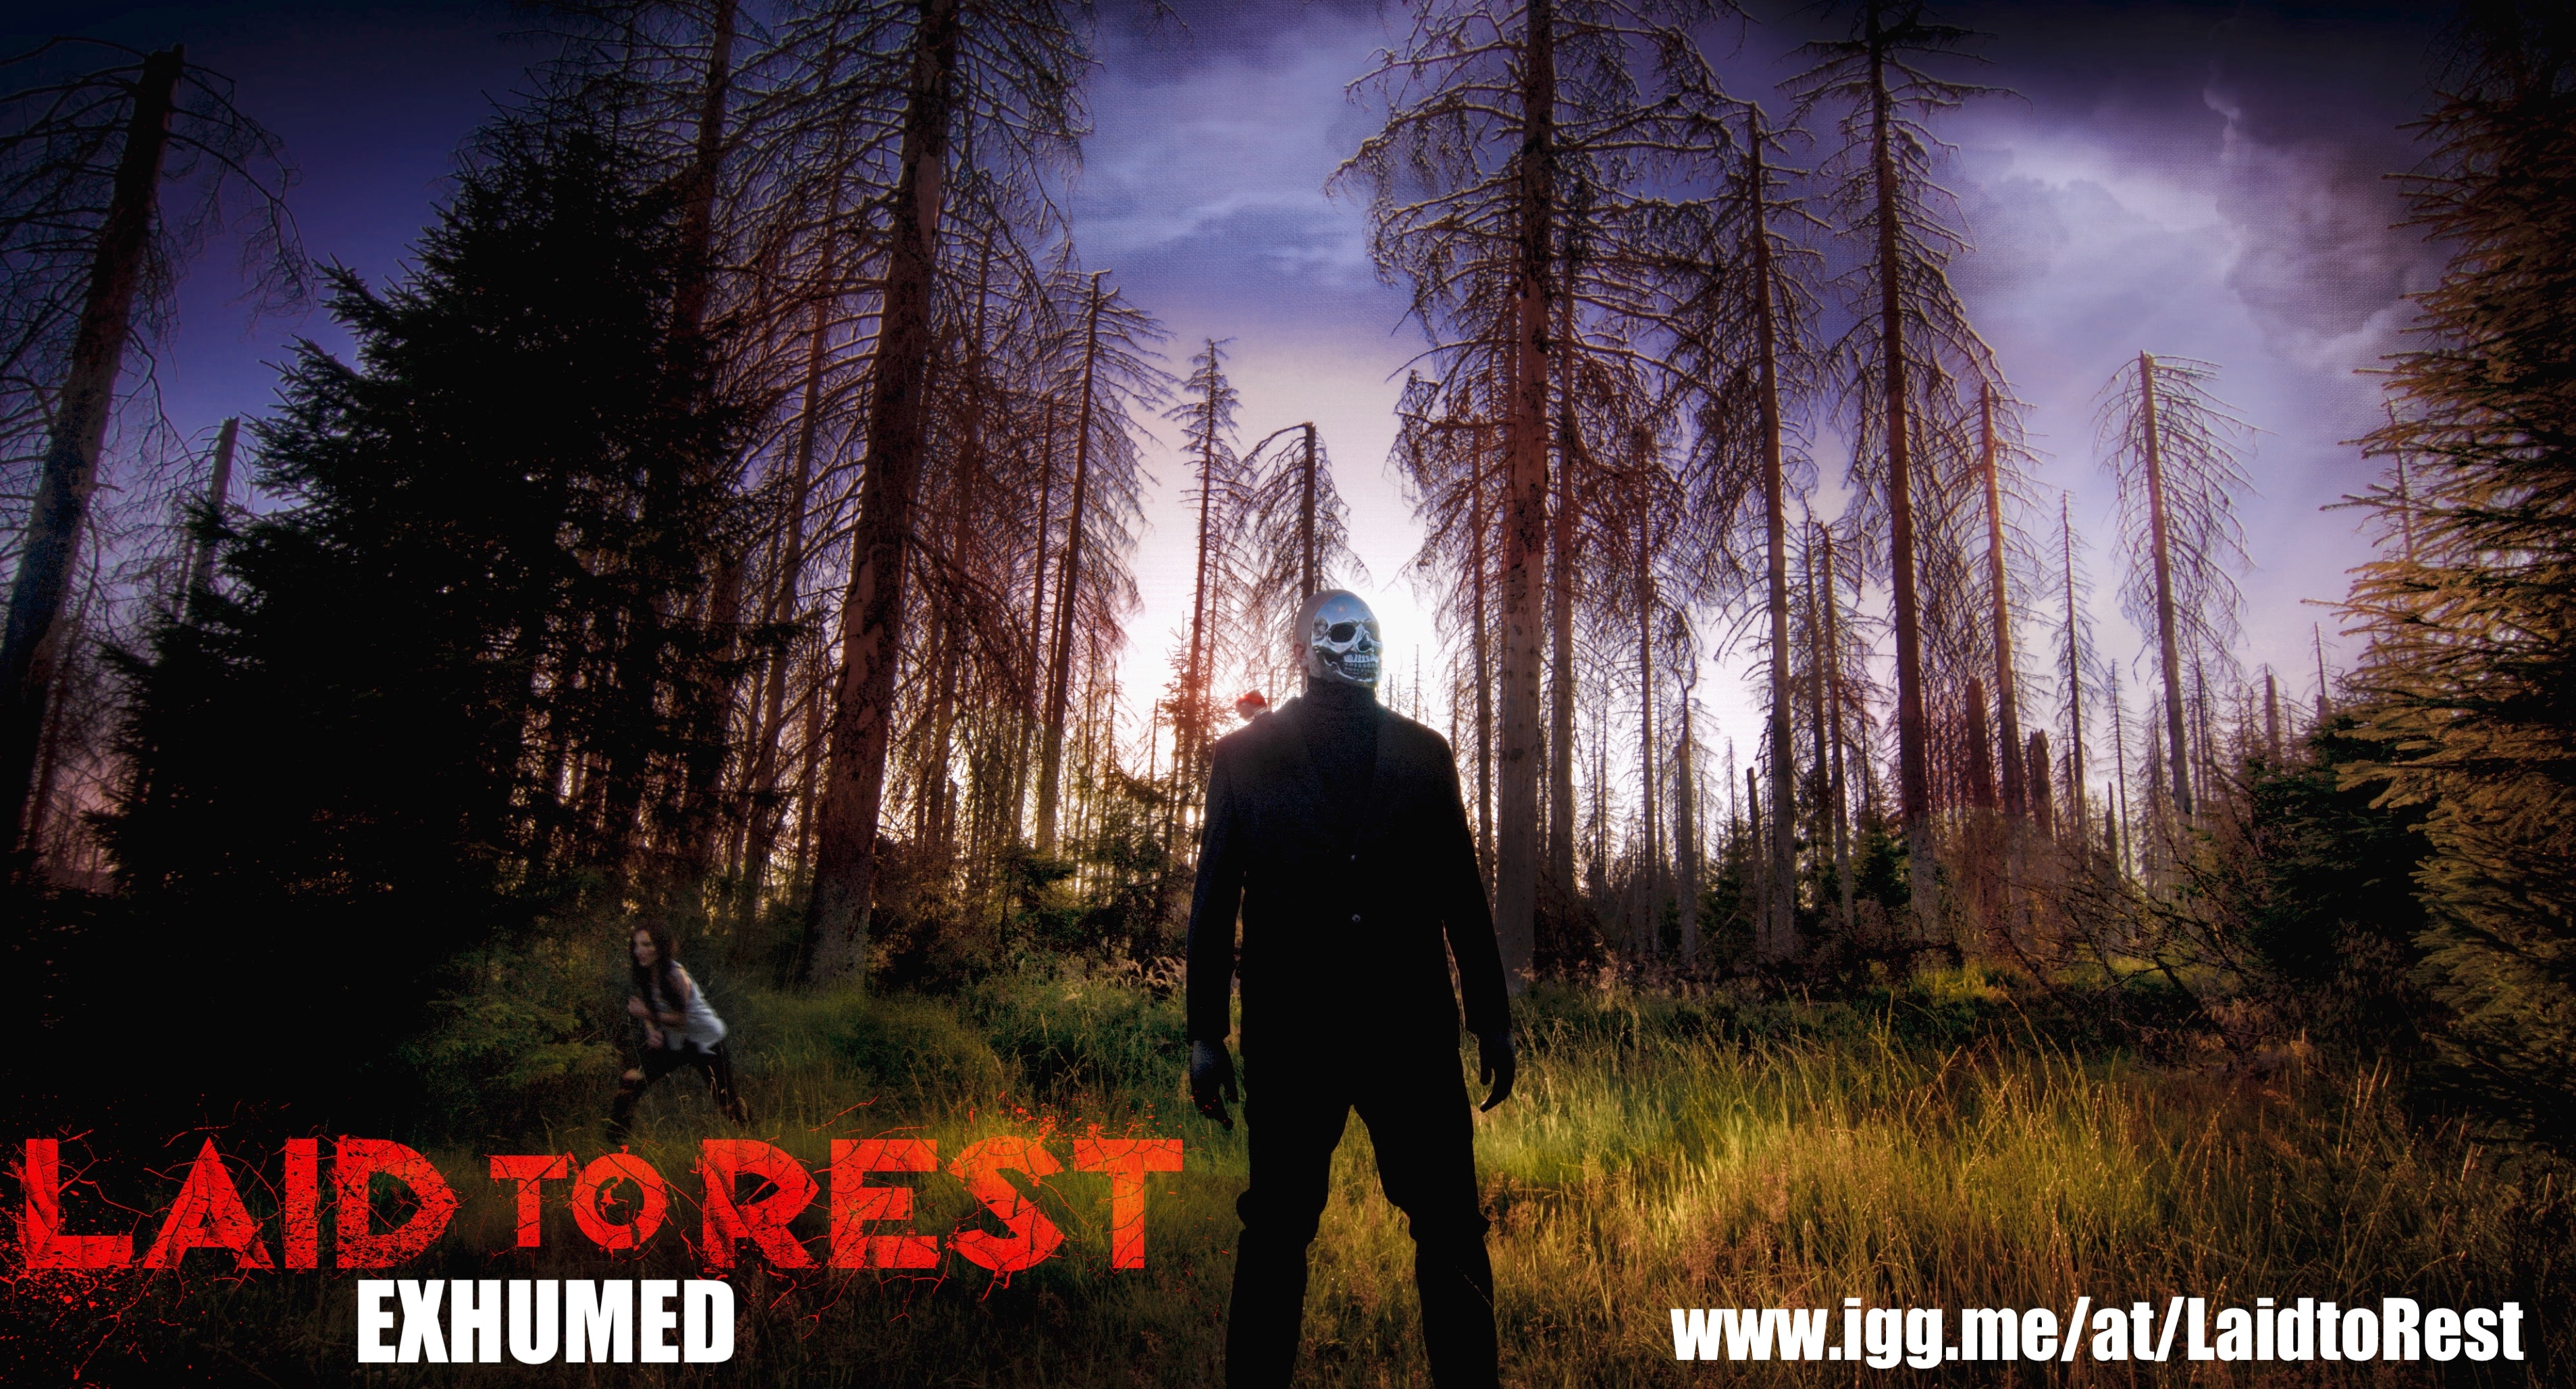 laid to rest exhumed - #SDCC18: Exclusive First Look: LAID TO REST: EXHUMED